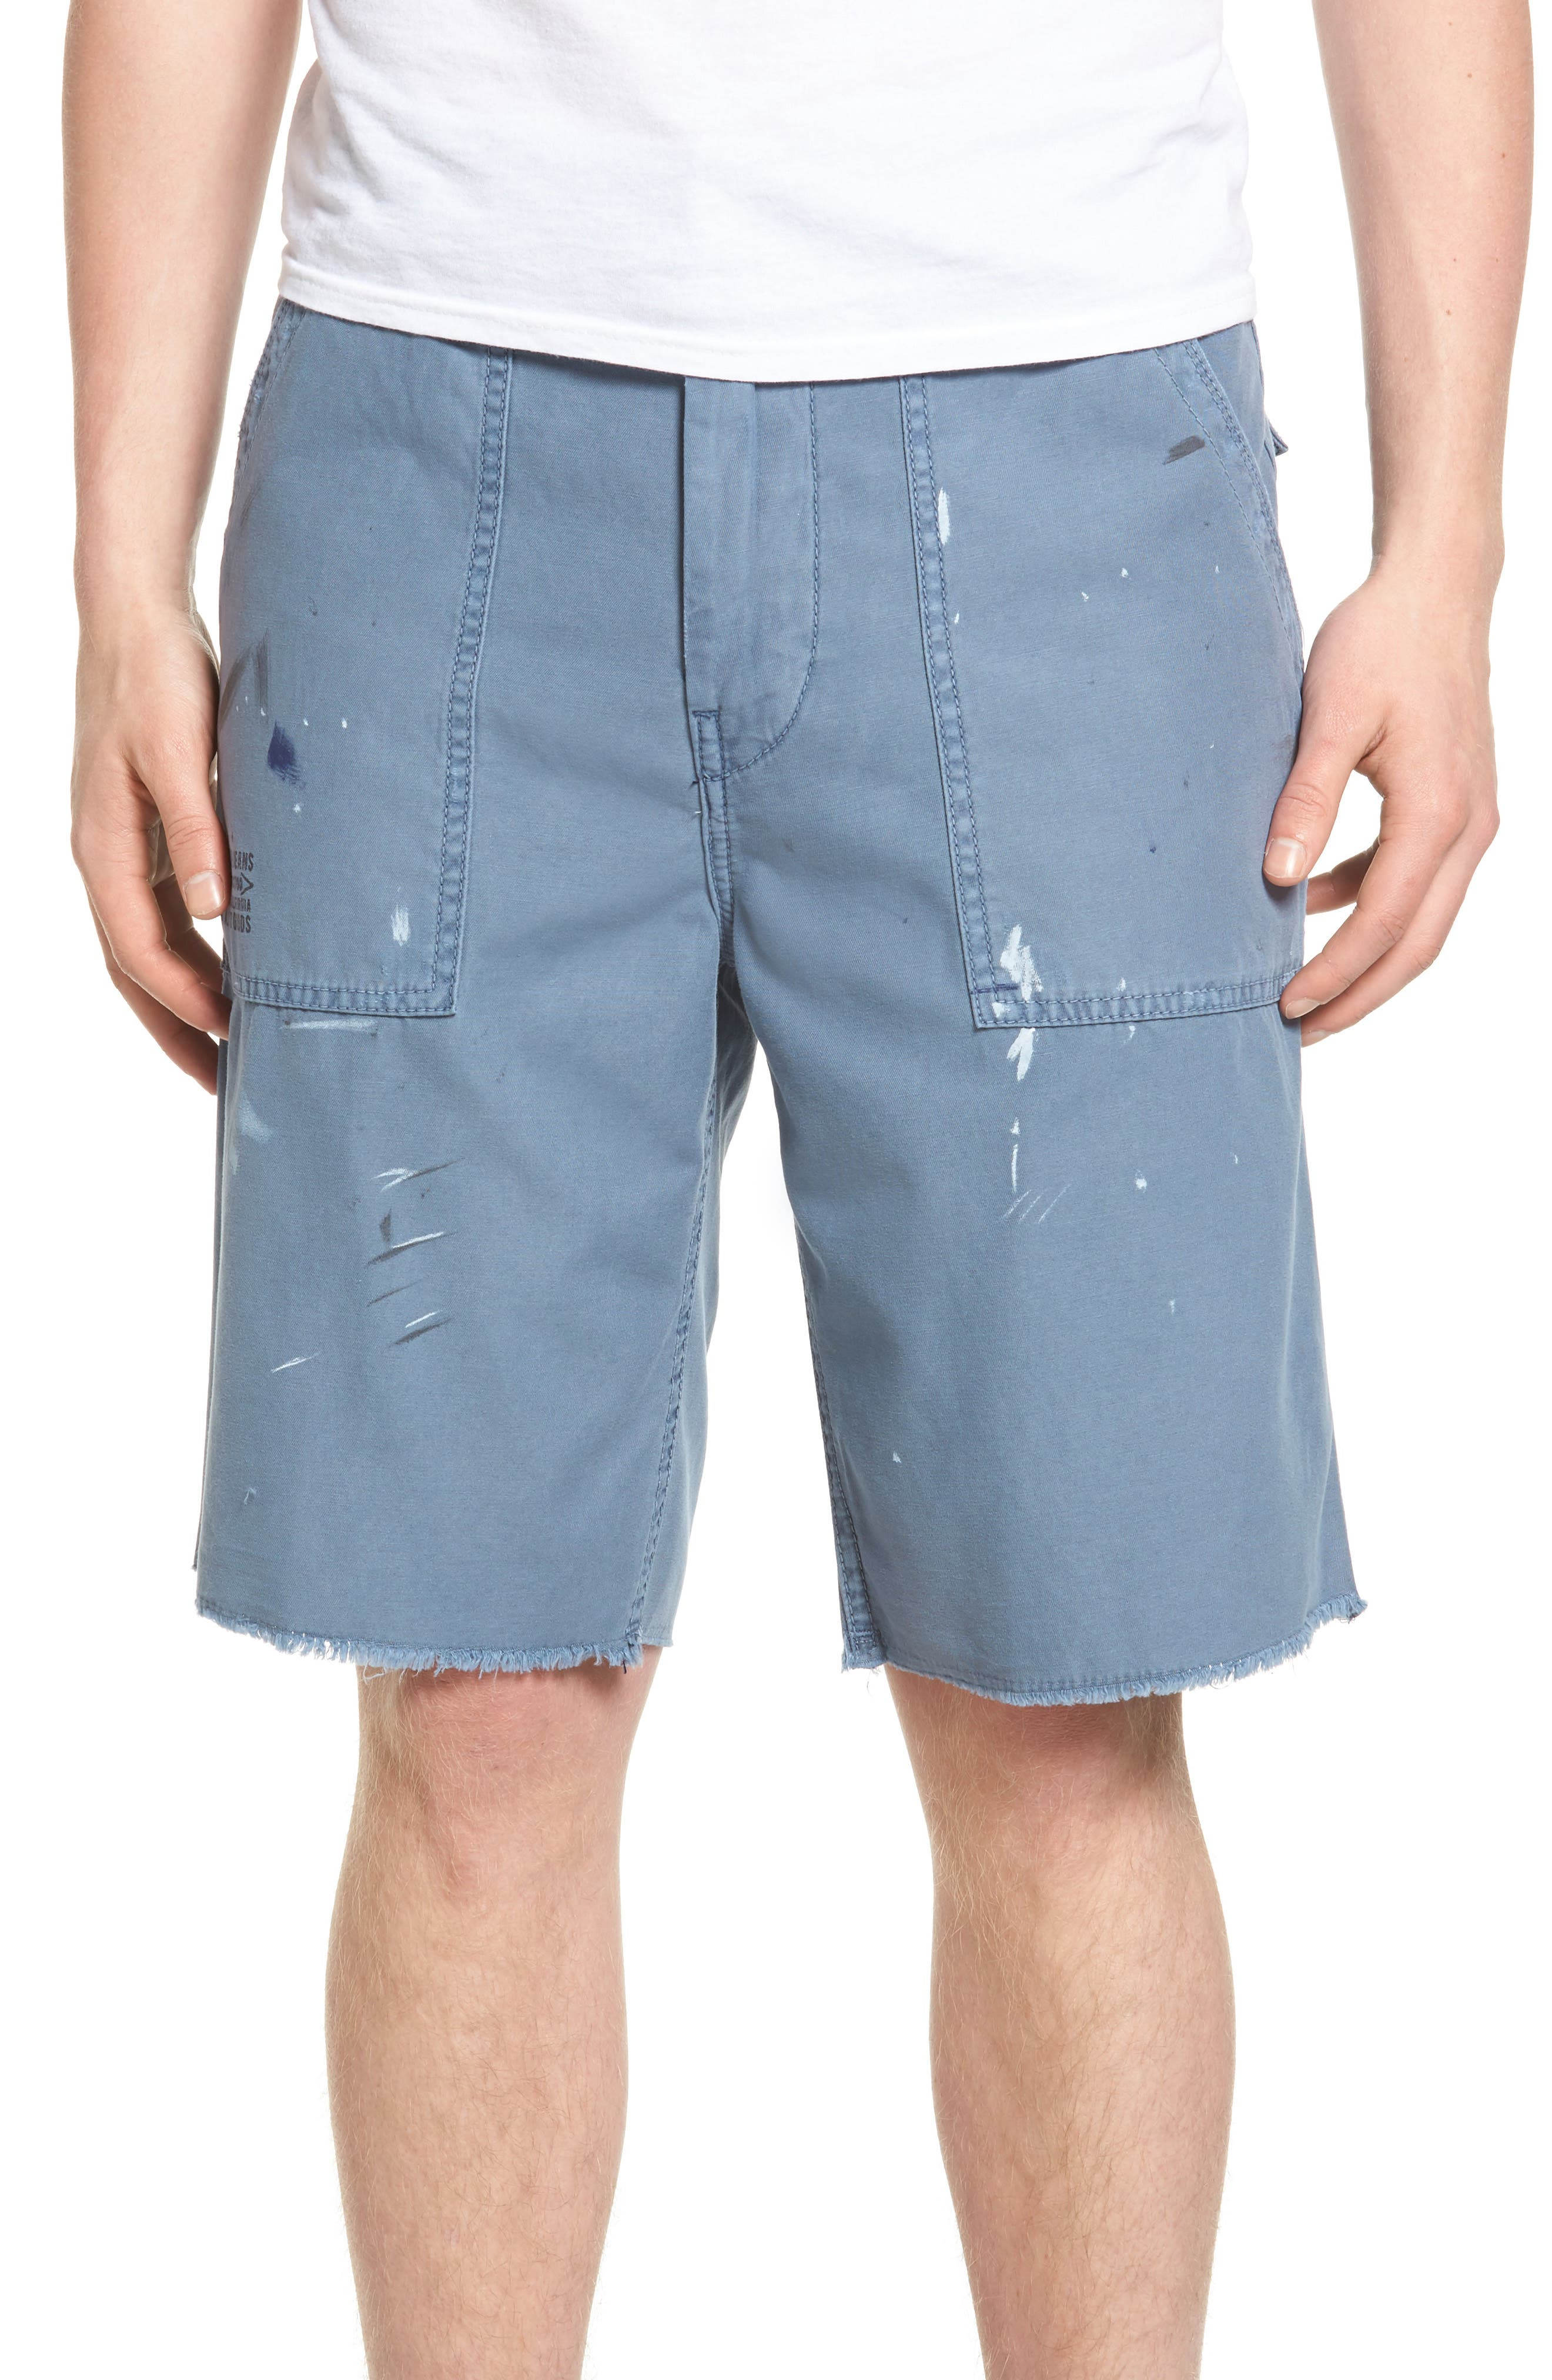 True Religion Brand Jeans Utility Surplus Shorts (Regular & Big)